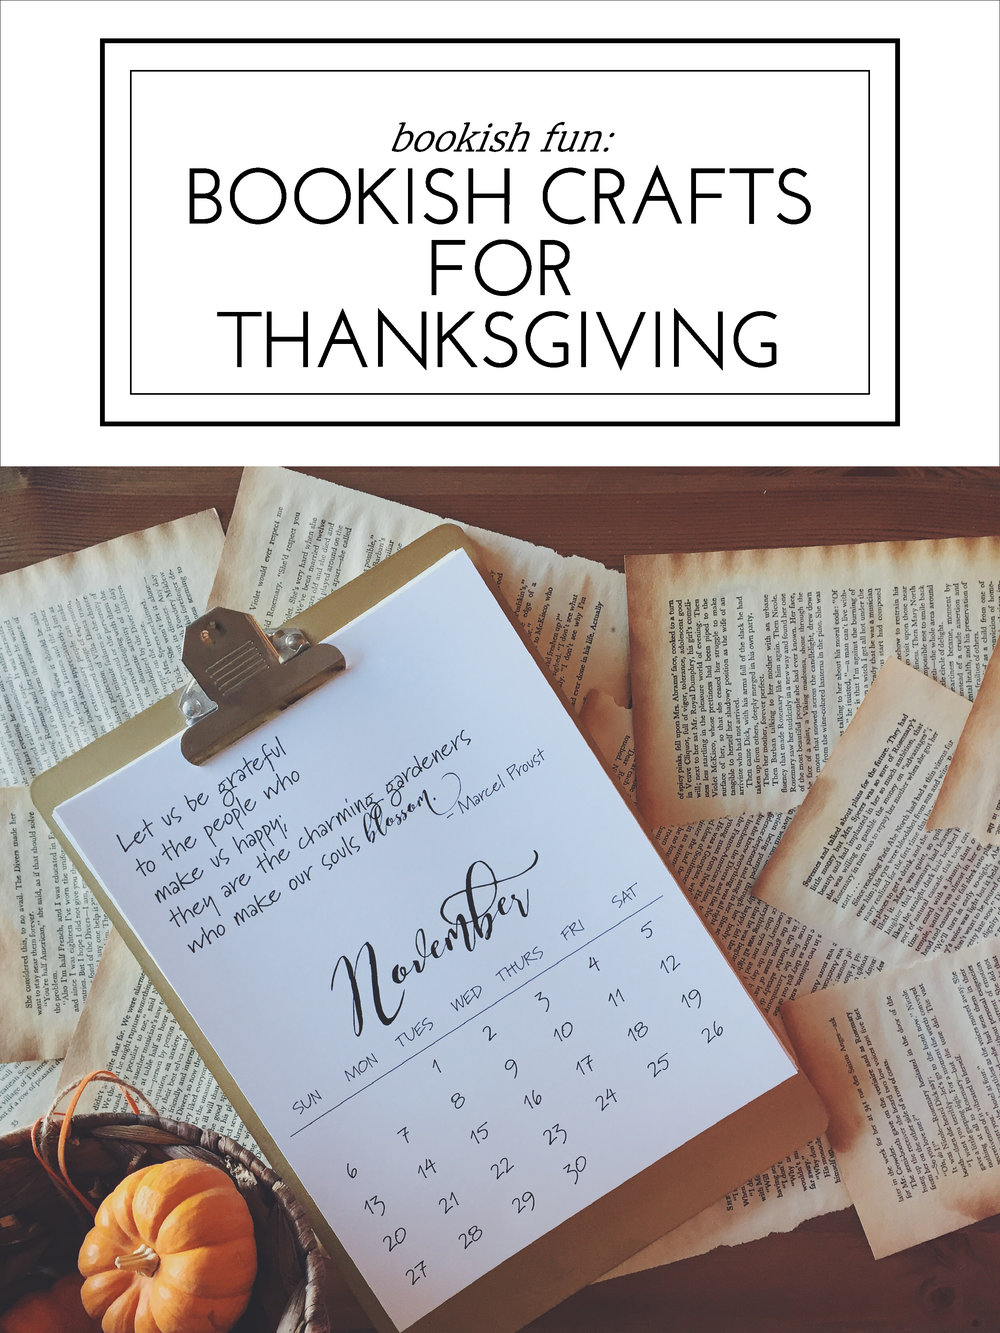 Blessed Bookworm's Bookish Crafts for Thanksgiving